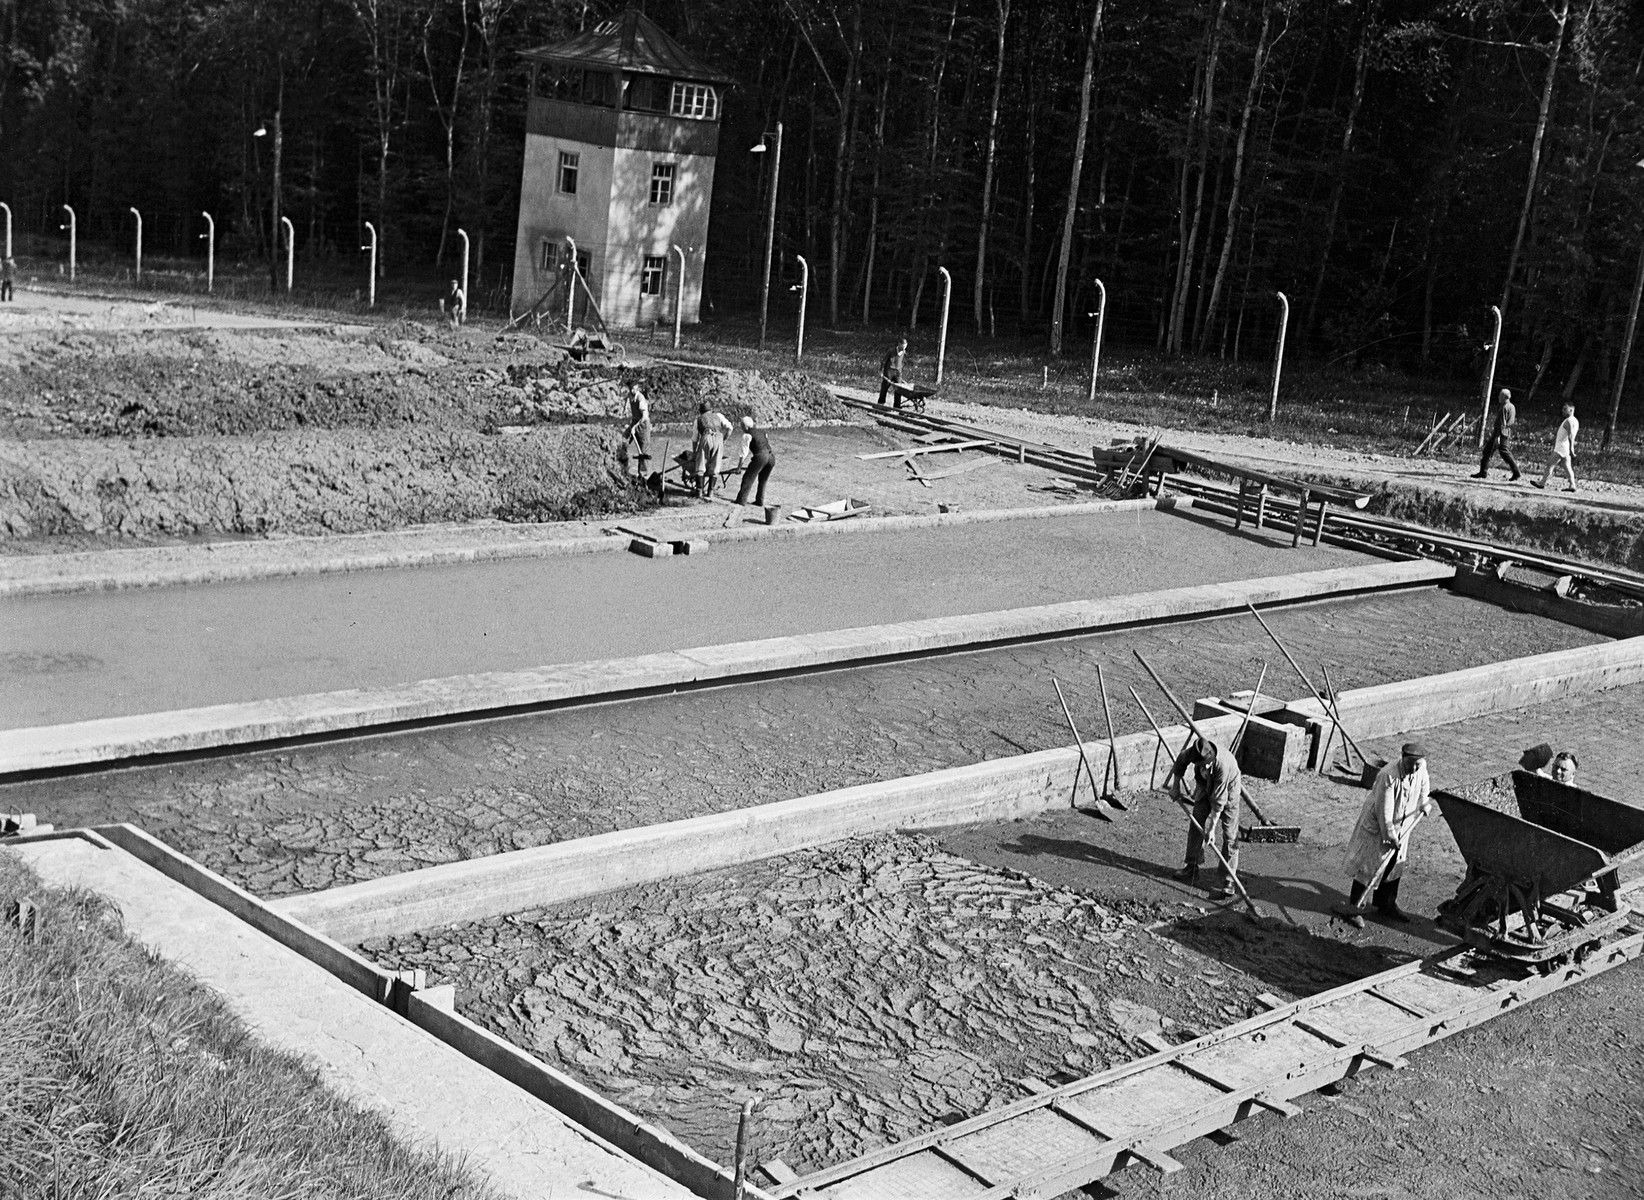 Waste disposal at Buchenwald.  The original caption identified those carrying out this work as former Nazis.